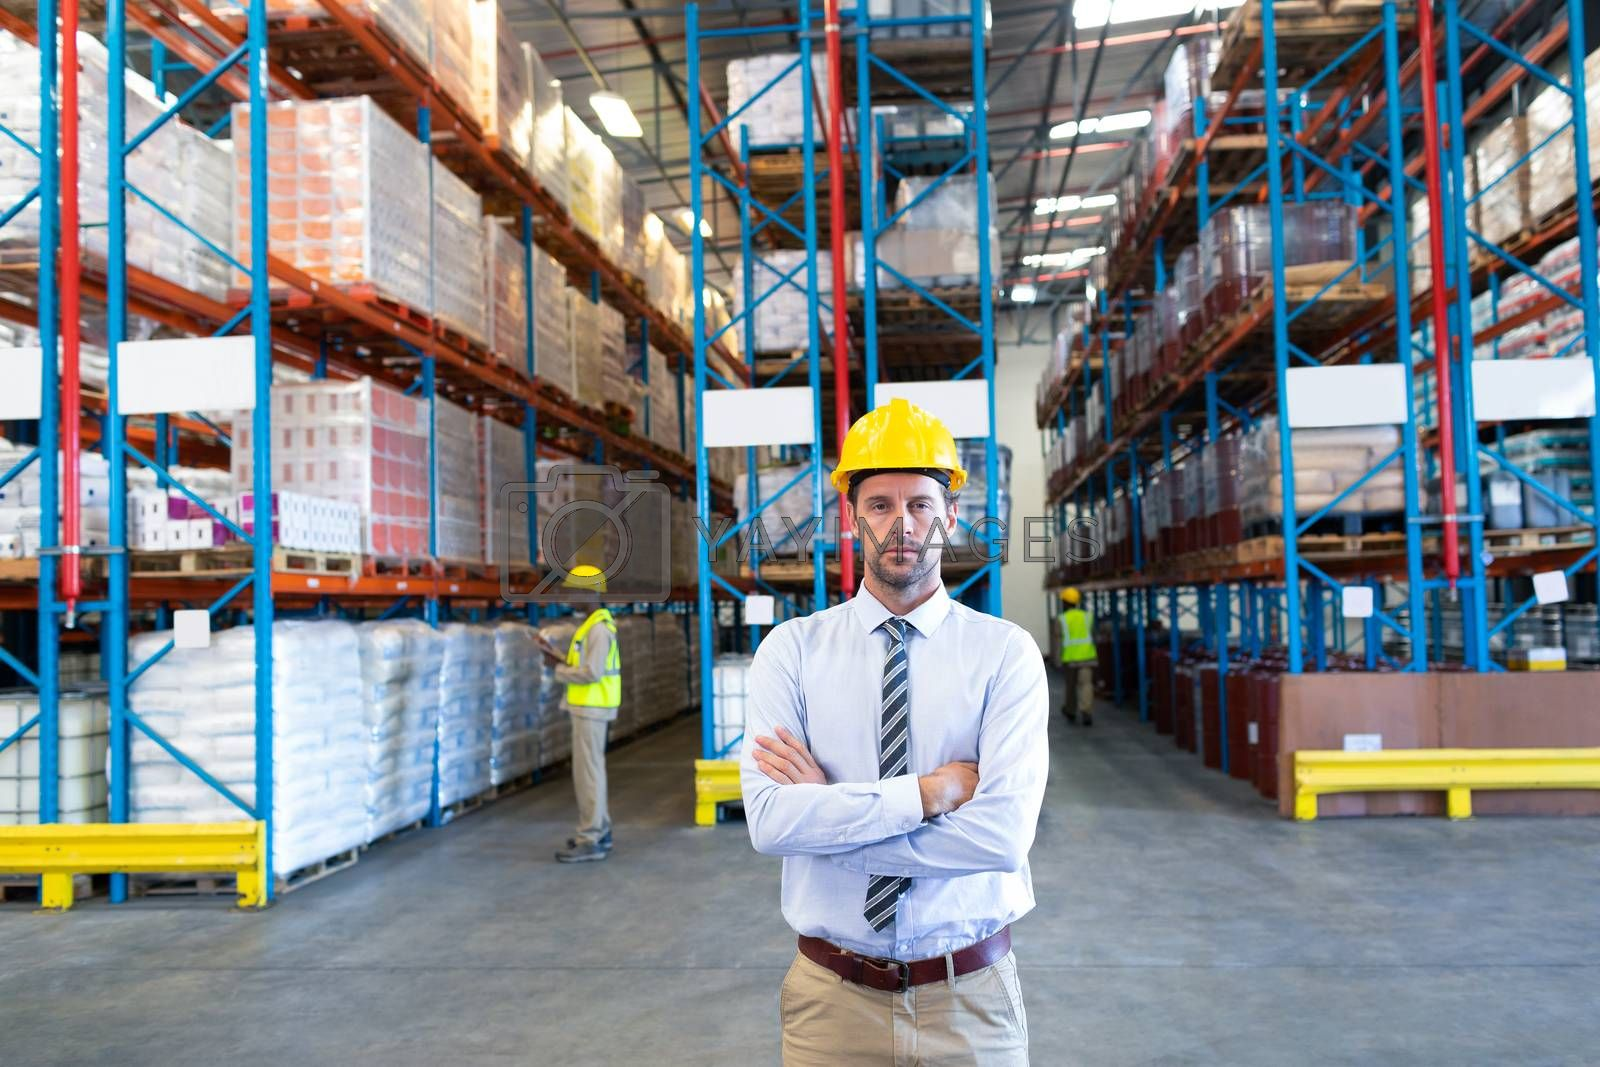 Front view of male supervisor standing with arms crossed and looking at camera in warehouse. This is a freight transportation and distribution warehouse. Industrial and industrial workers concept